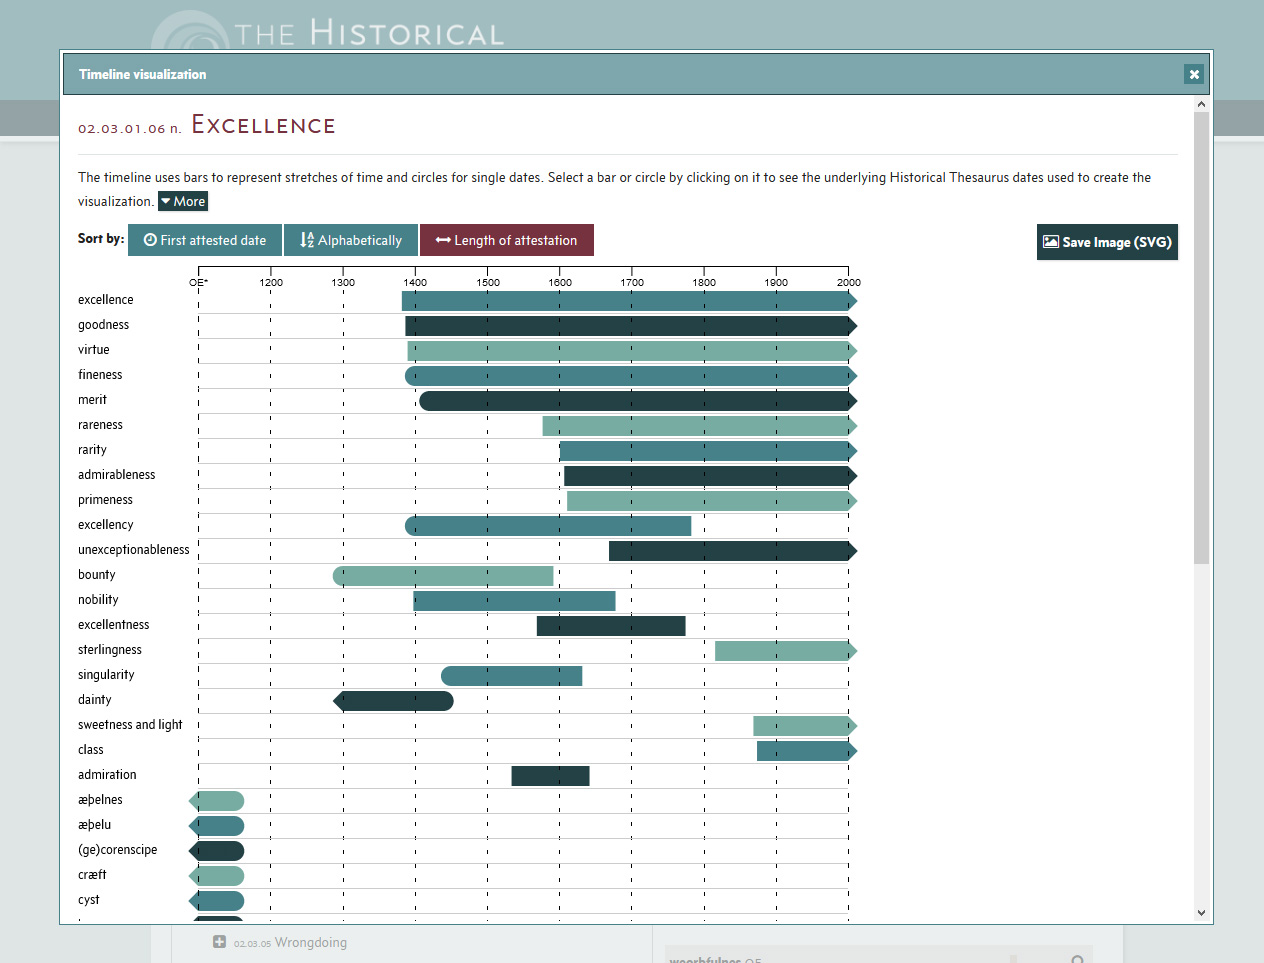 Timeline visualisation, showing words for 'Excellence' ordered by length of attestation